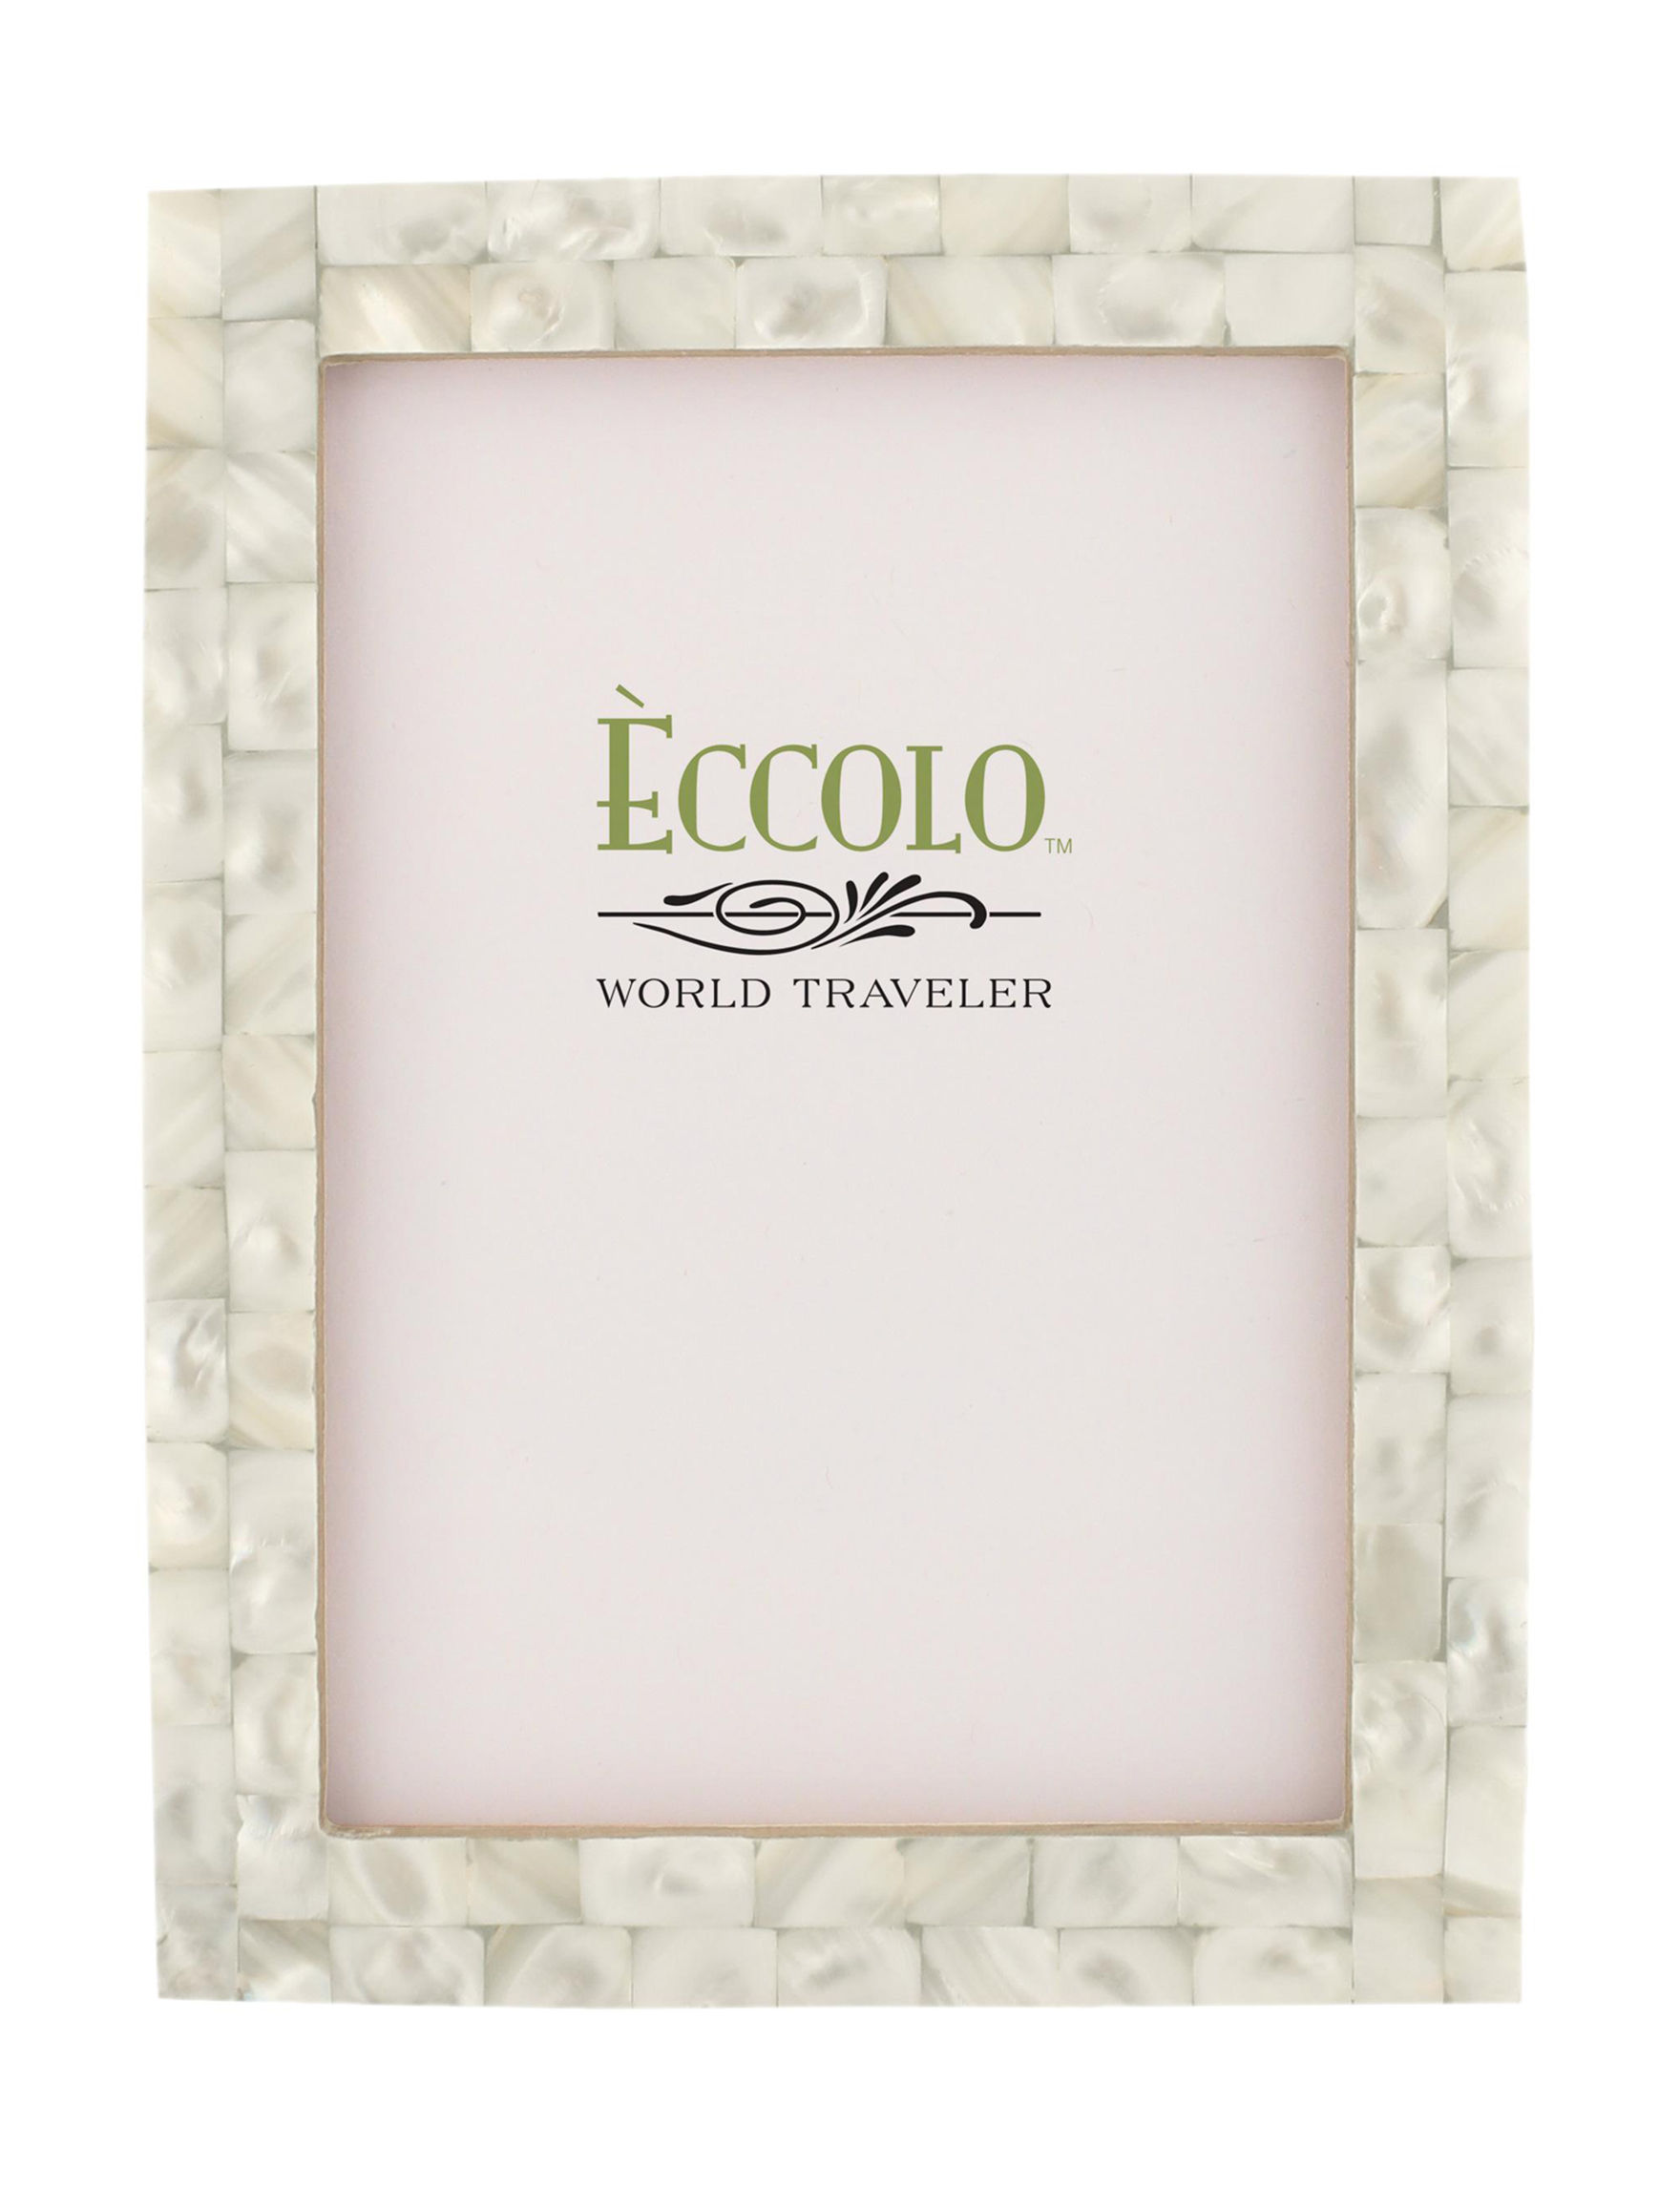 Eccolo White Frames & Shadow Boxes Home Accents